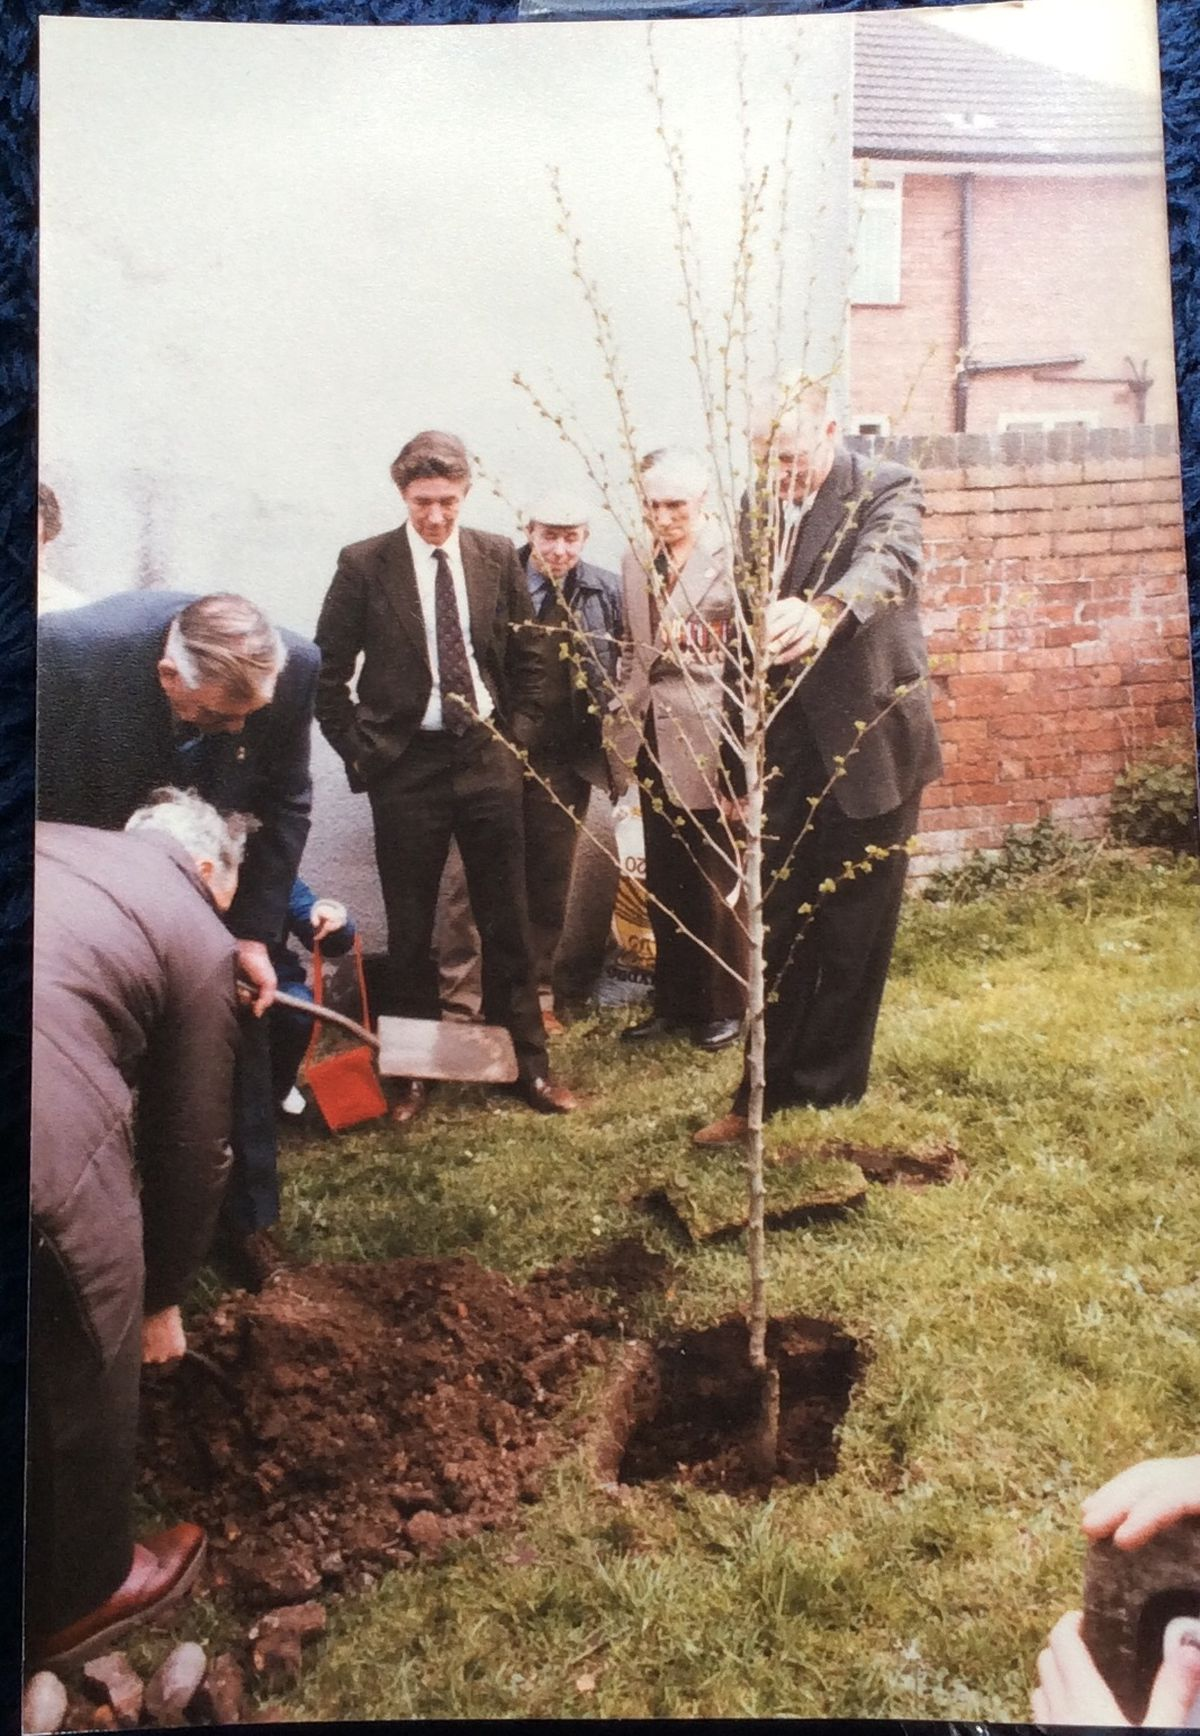 The tree being planted on May 8, 1985